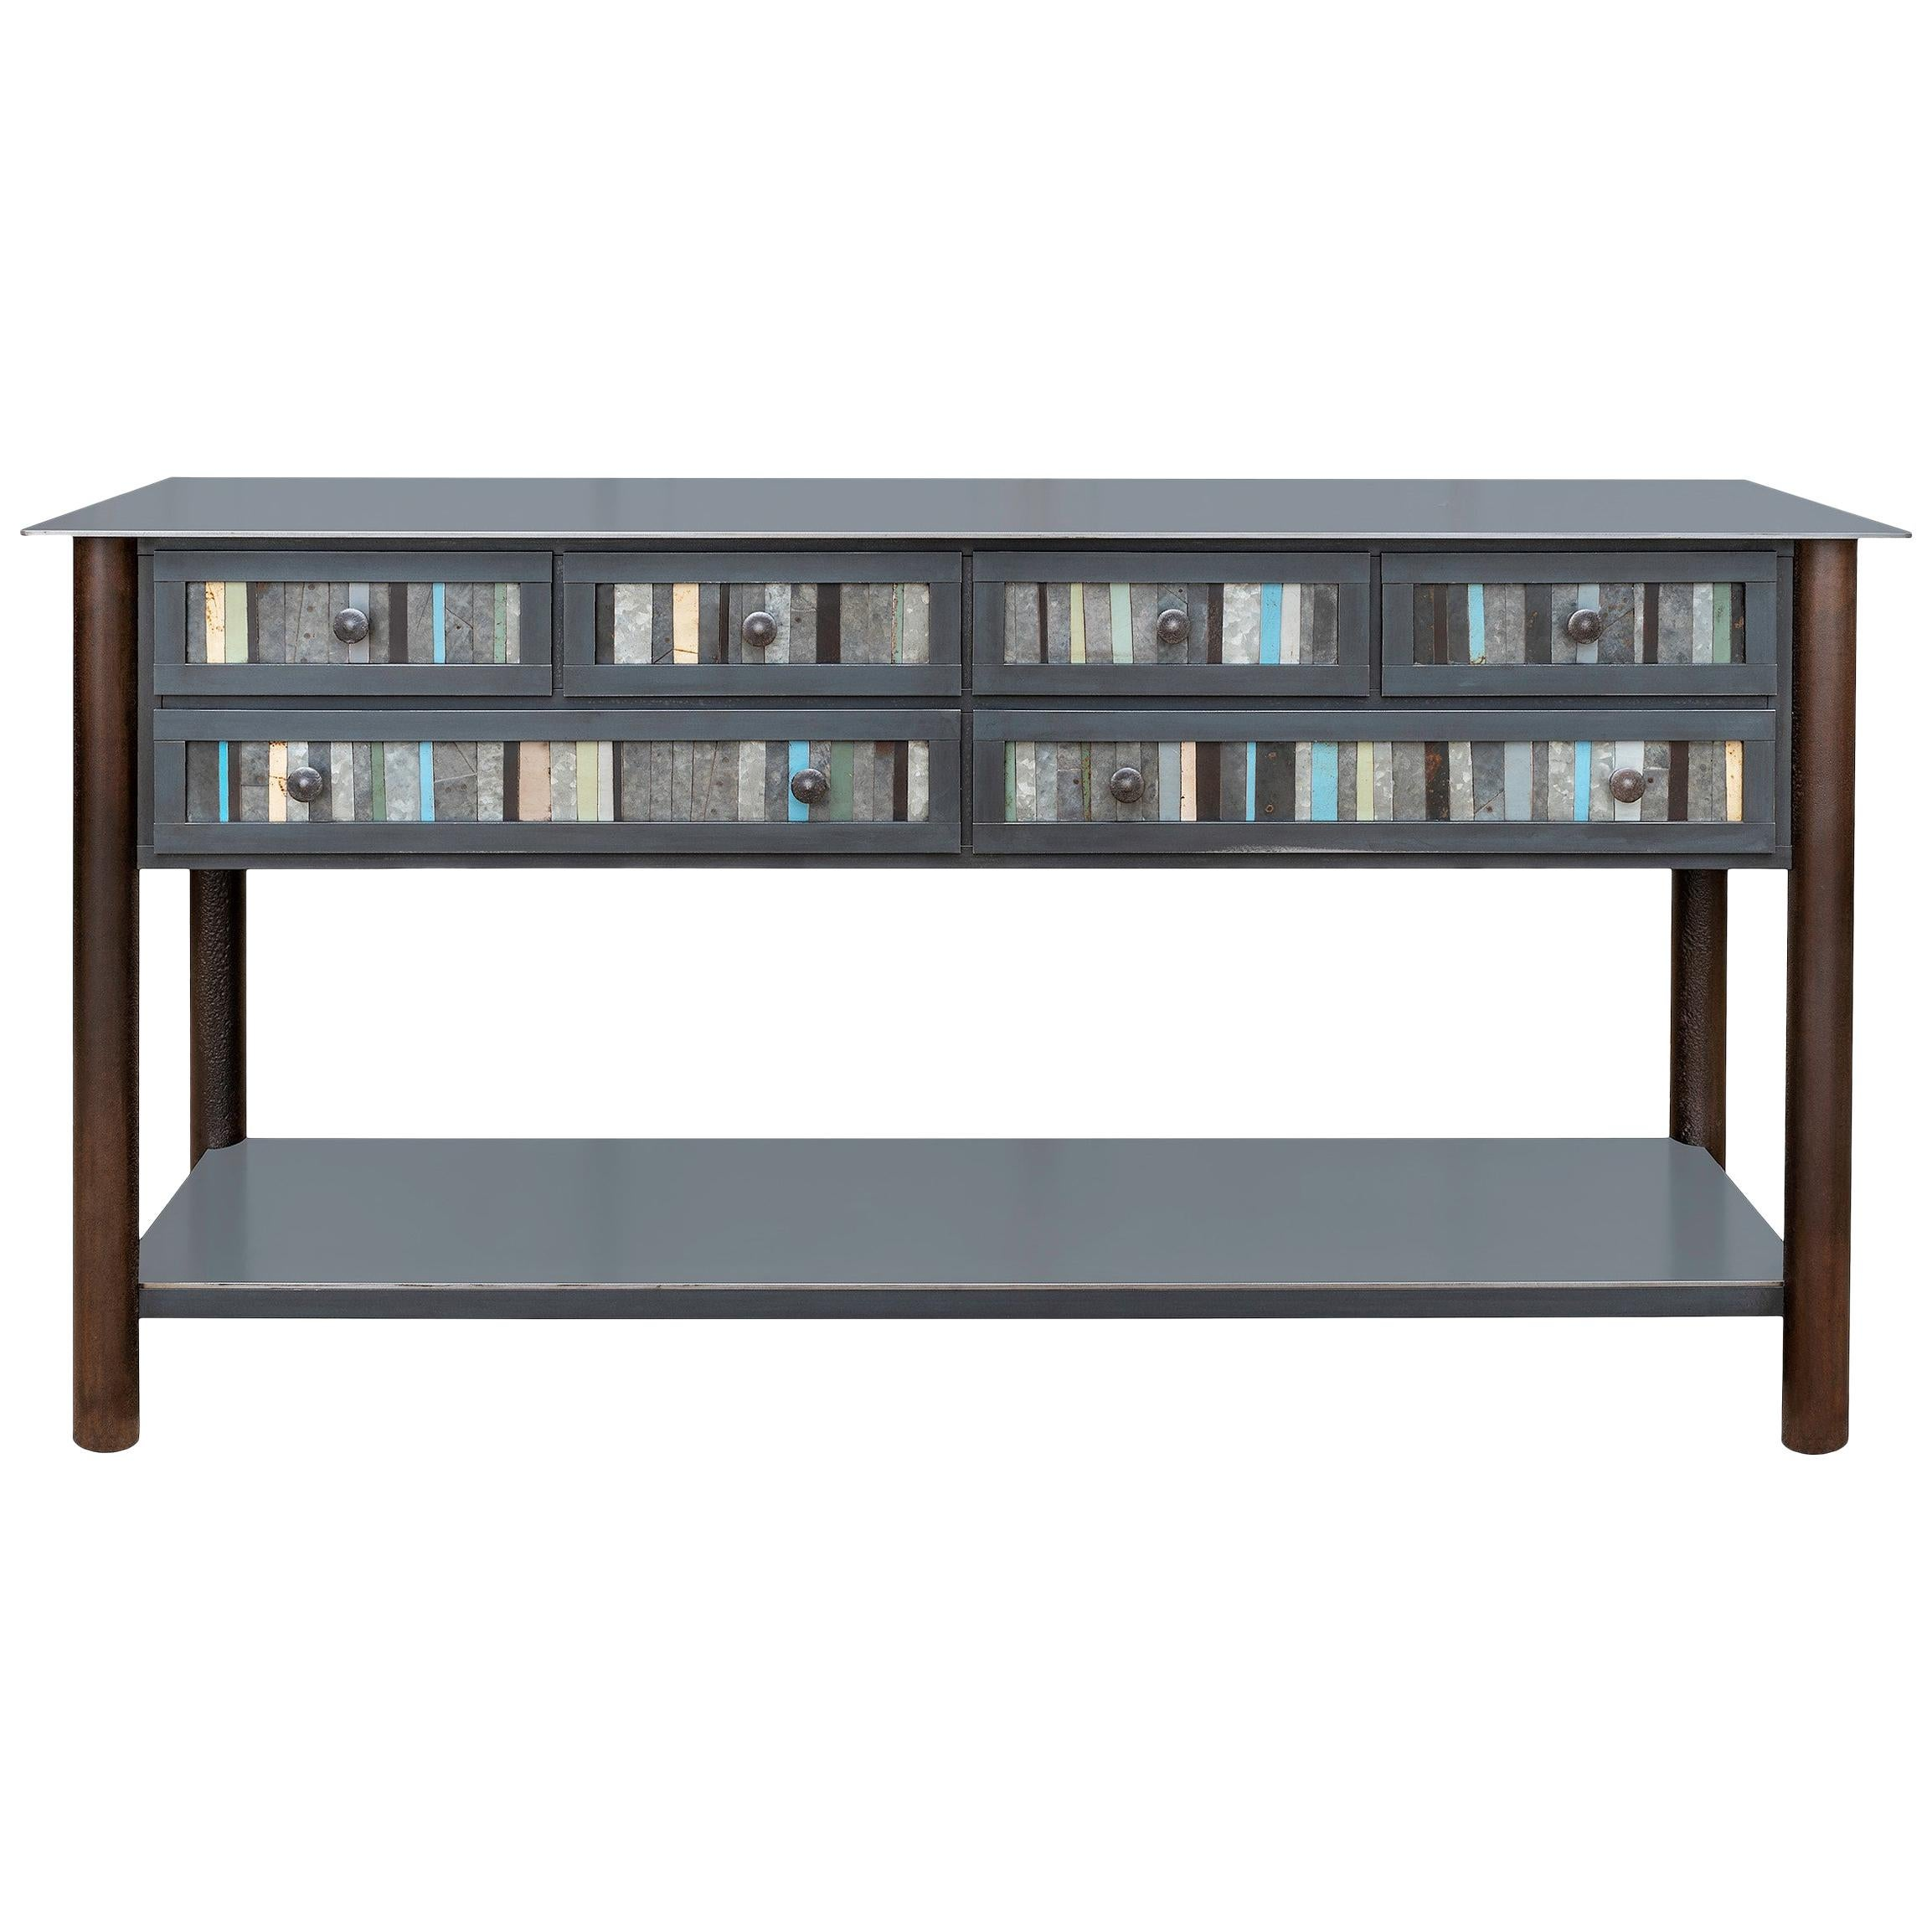 Jim Rose Steel Furniture, Six-Drawer Strip Quilt Counter with Shelf